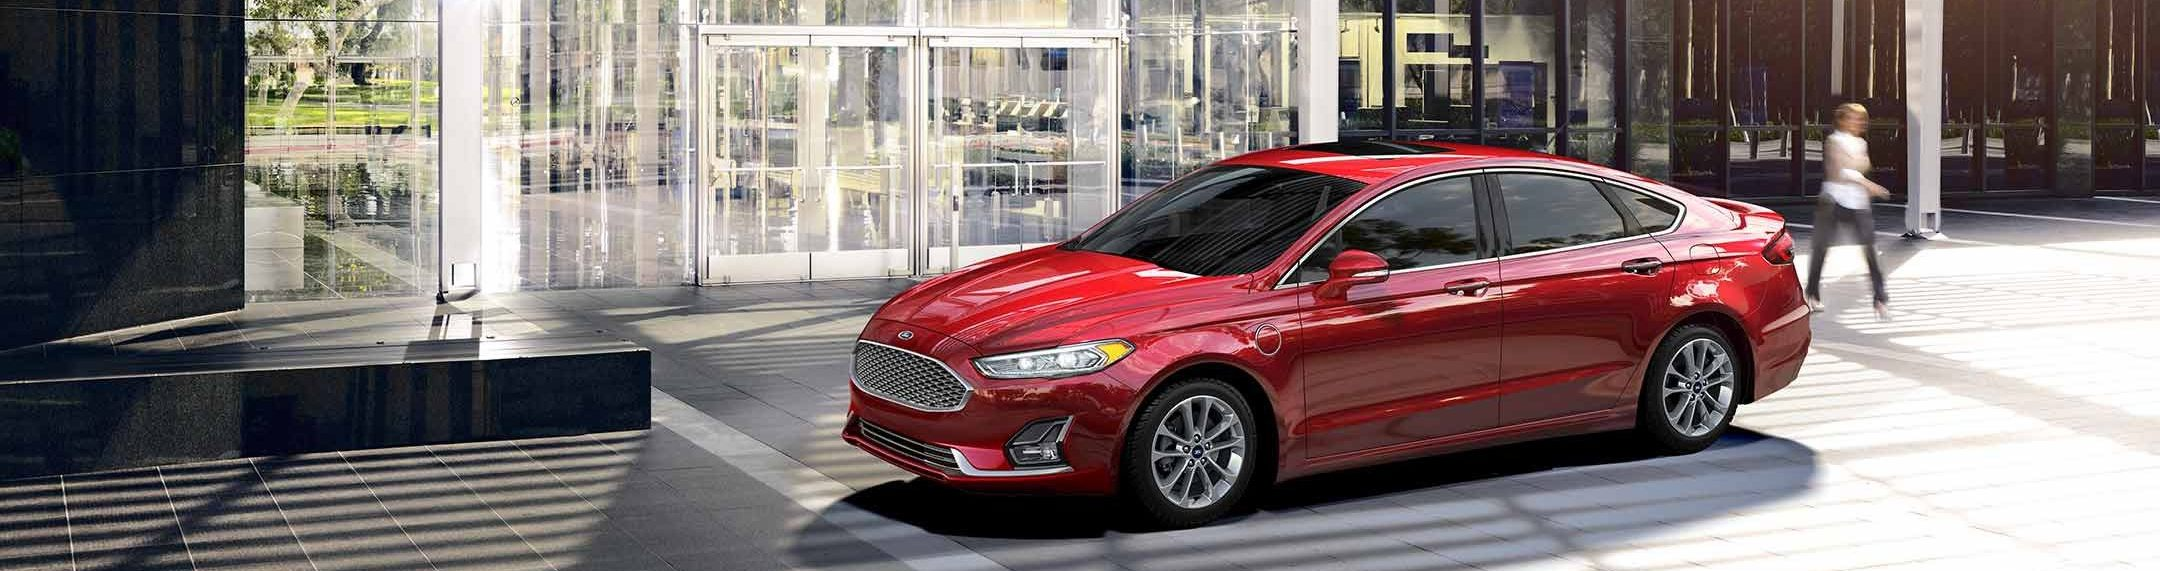 Used Ford Fusion for Sale in Melrose Park, IL